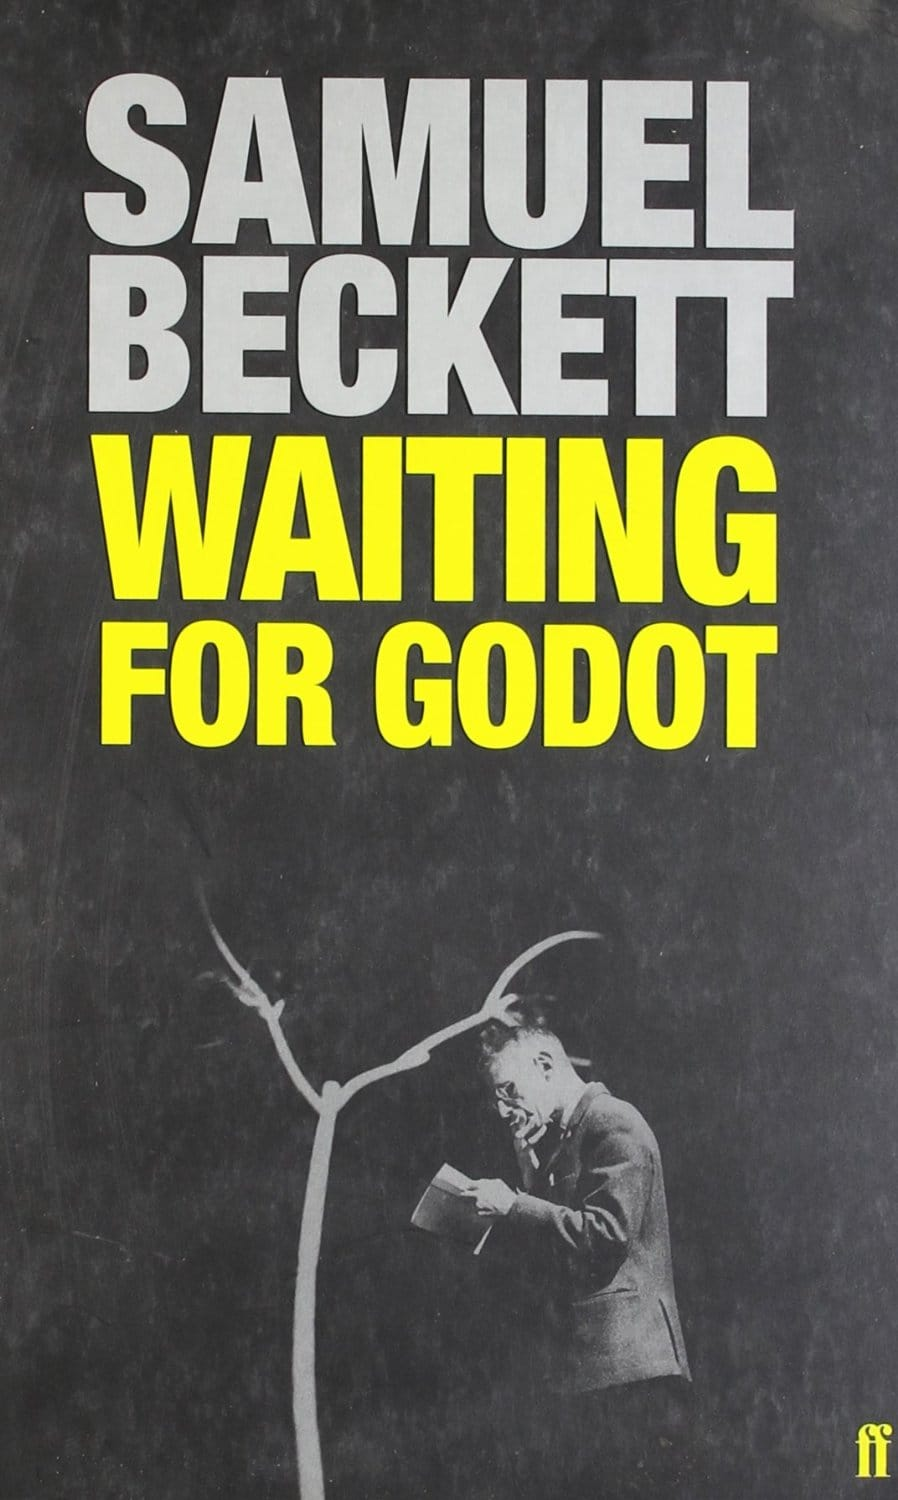 http://ilarge.lisimg.com/image/7405227/898full-beckett-directs-beckett%3A-waiting-for-godot-by-samuel-beckett-poster.jpg